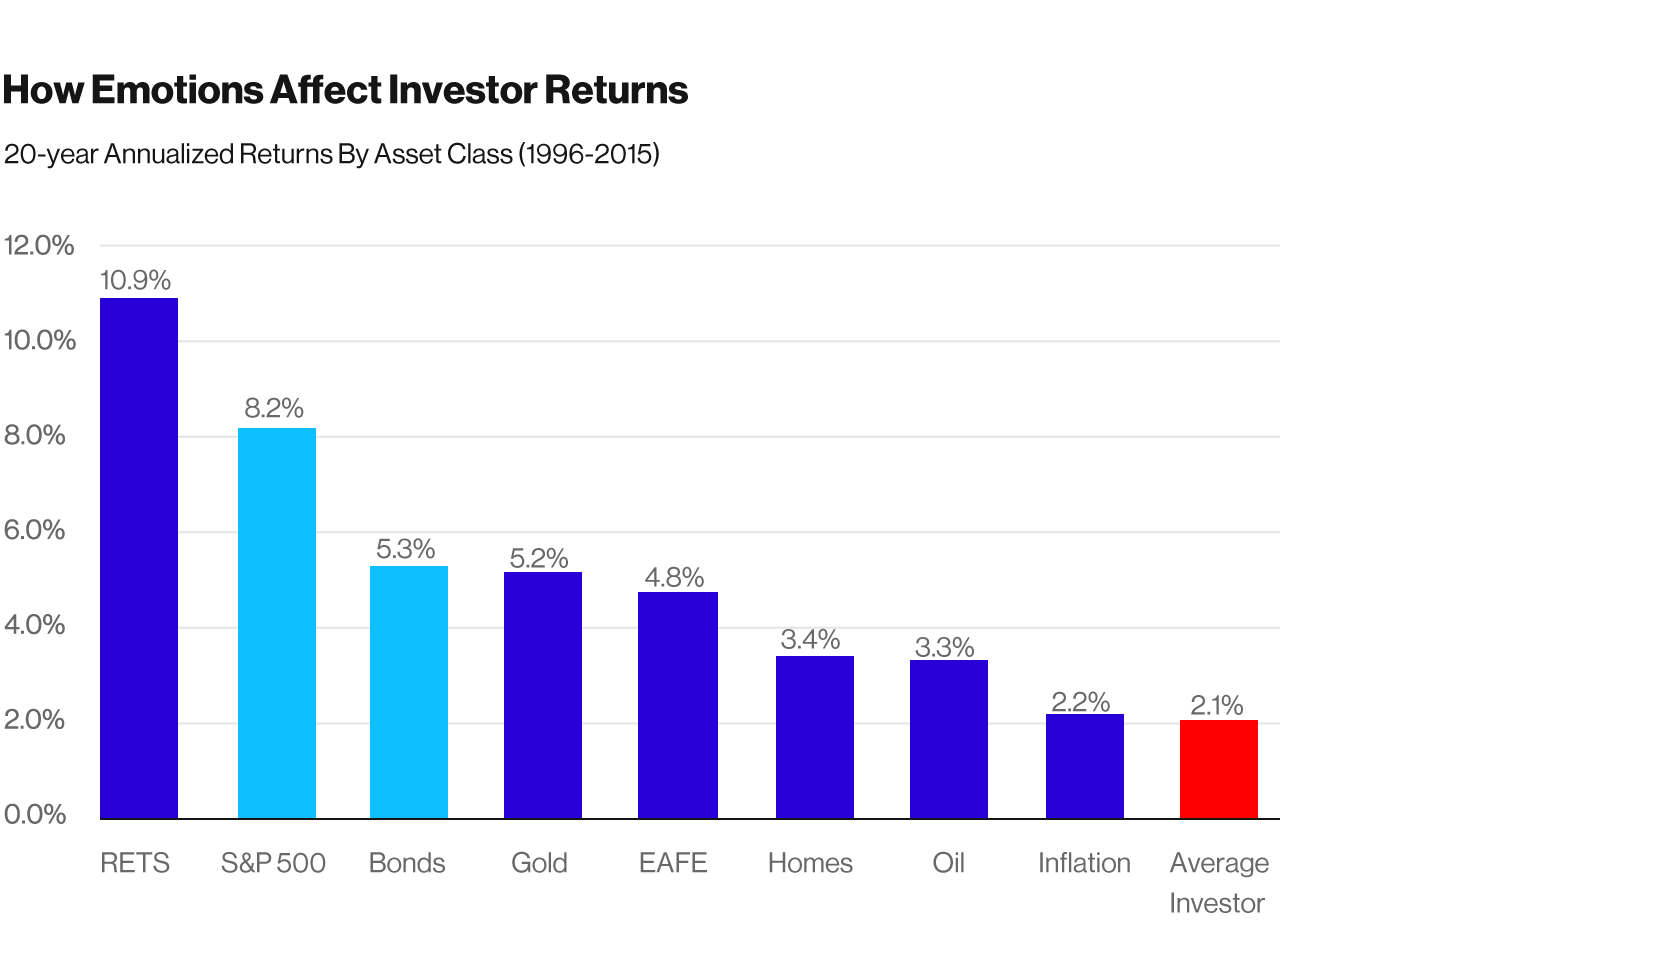 Table 1. How Emotions Affect Investor Returns